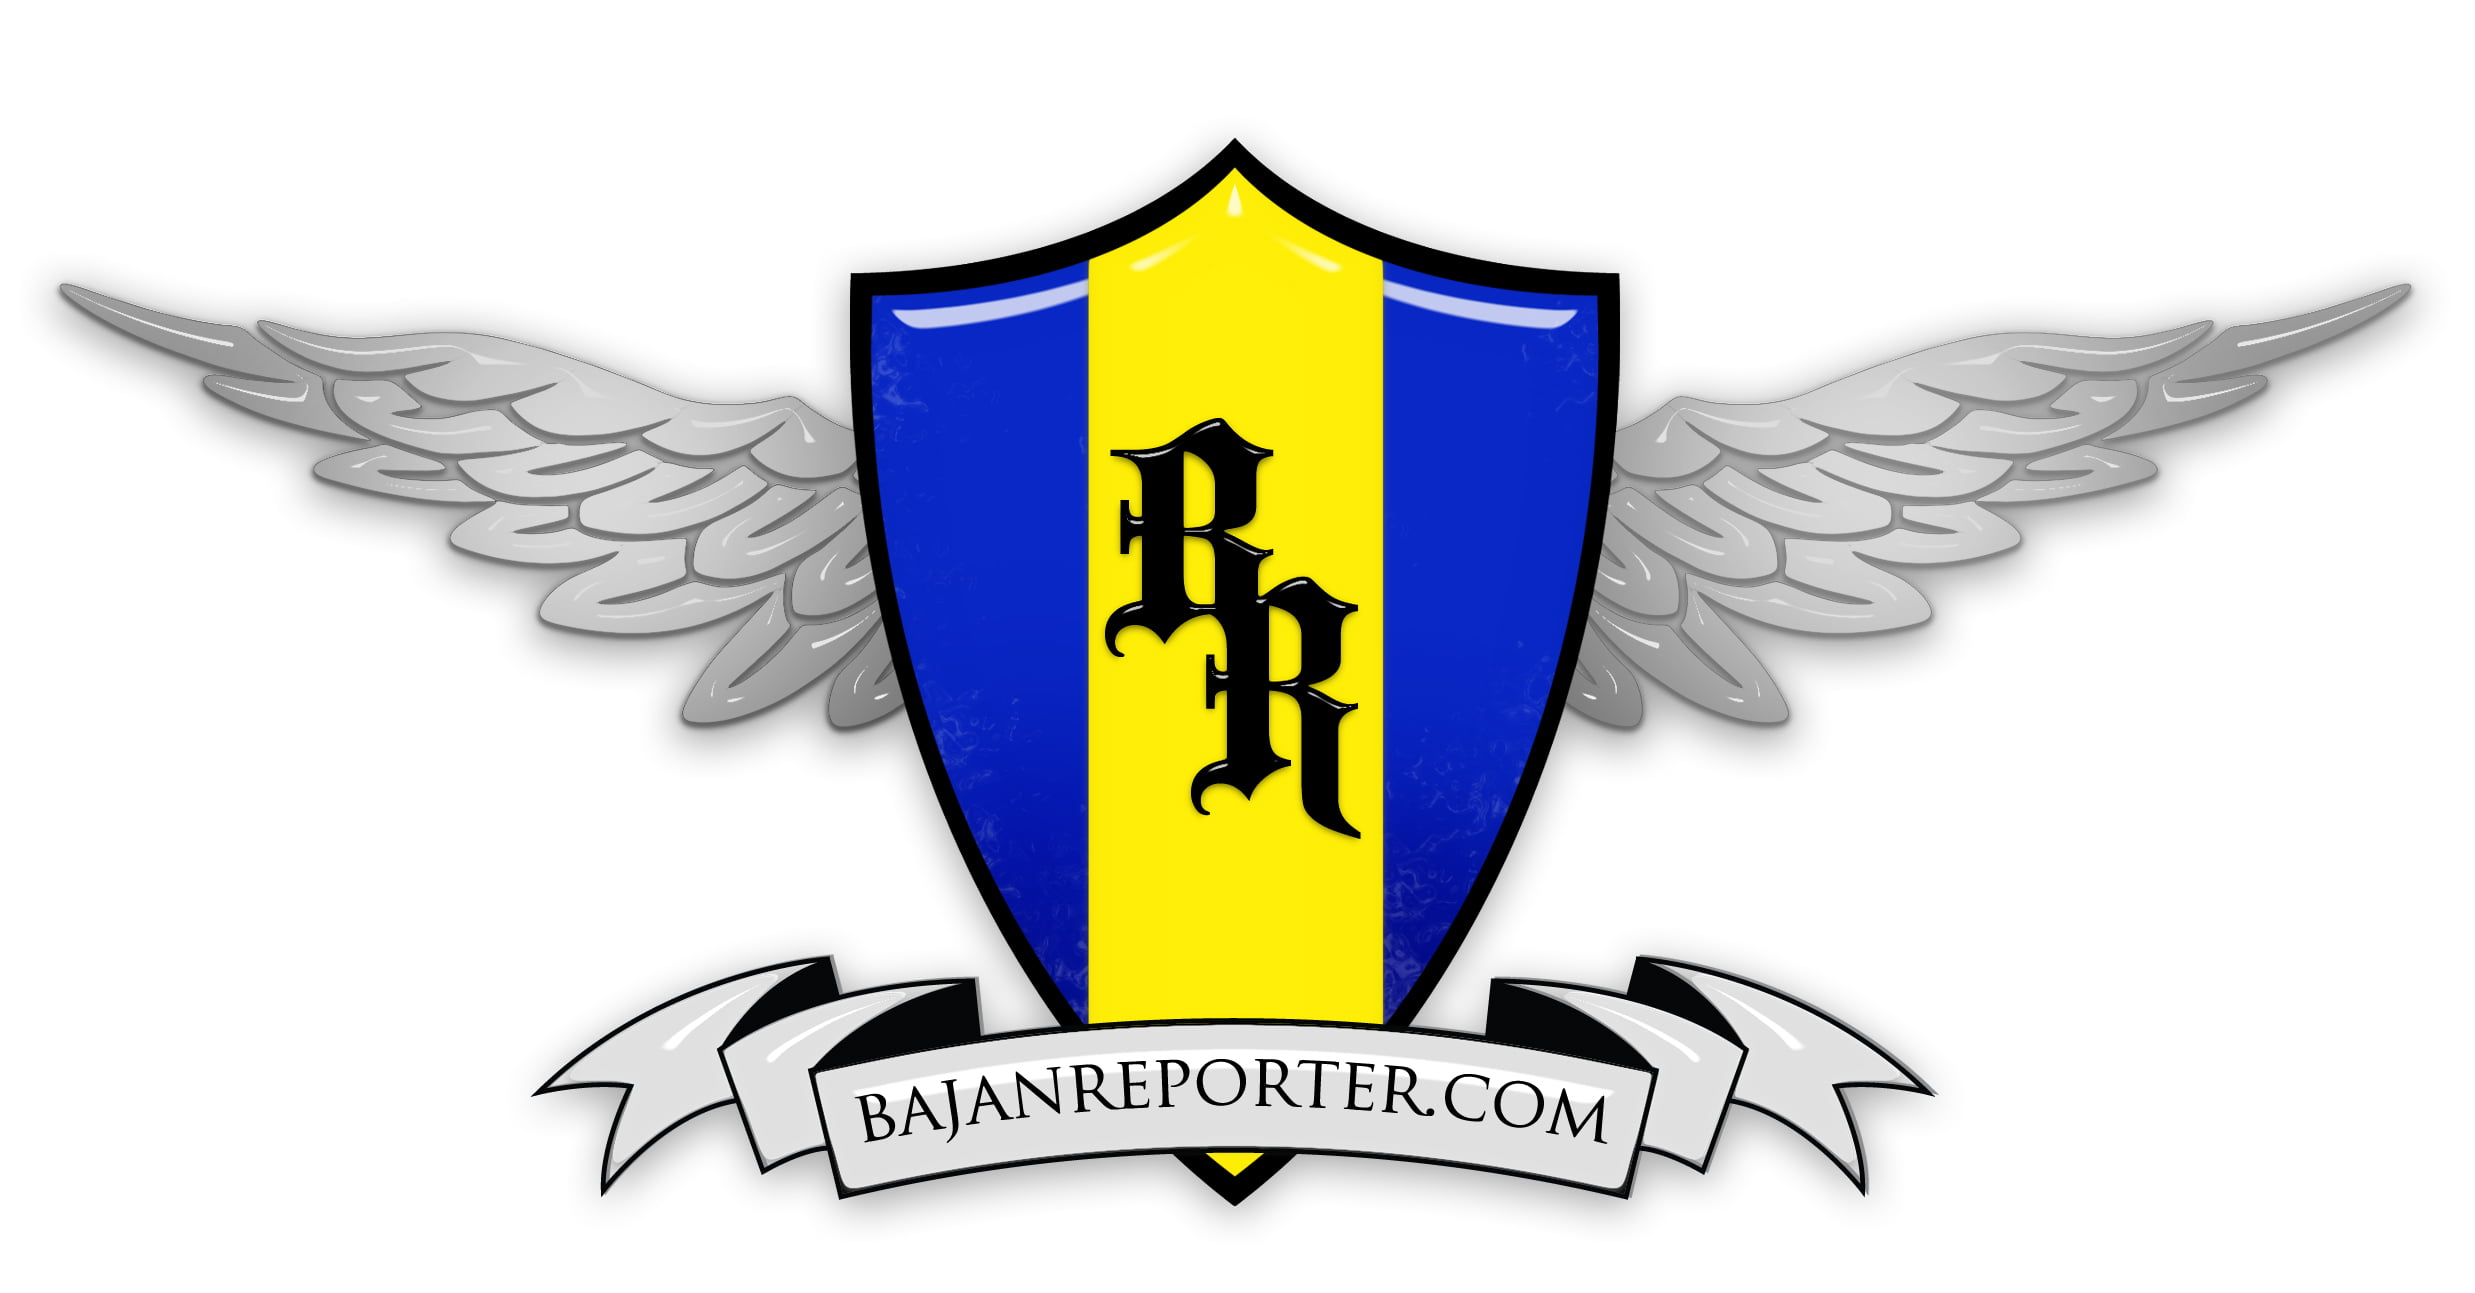 We'd like to hear from you! airbourne@bajanreporter.com/(+1 246) 285-3586